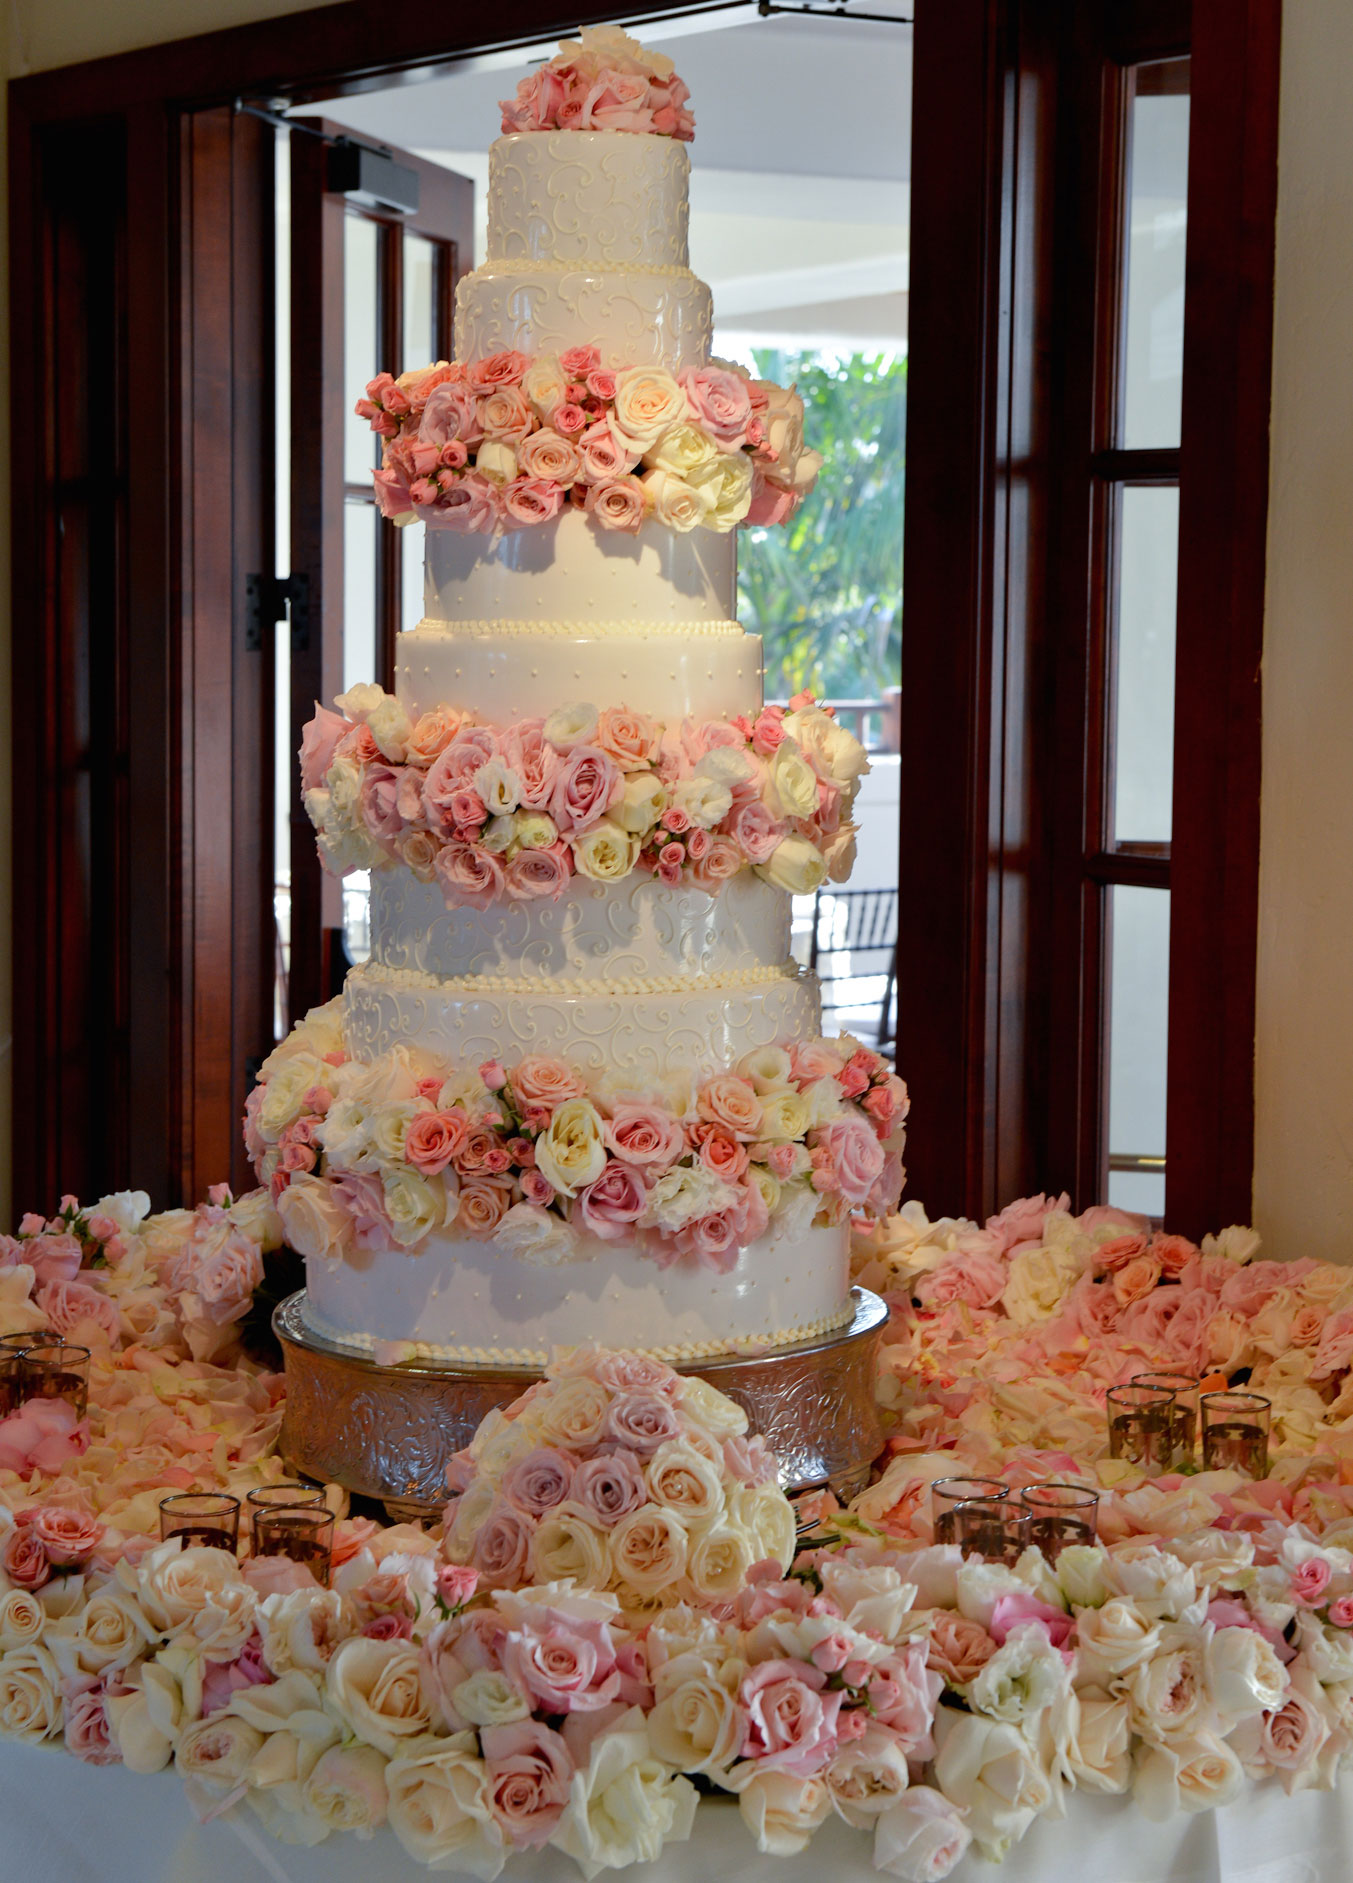 Tall white wedding cake with fresh pink and white flowers